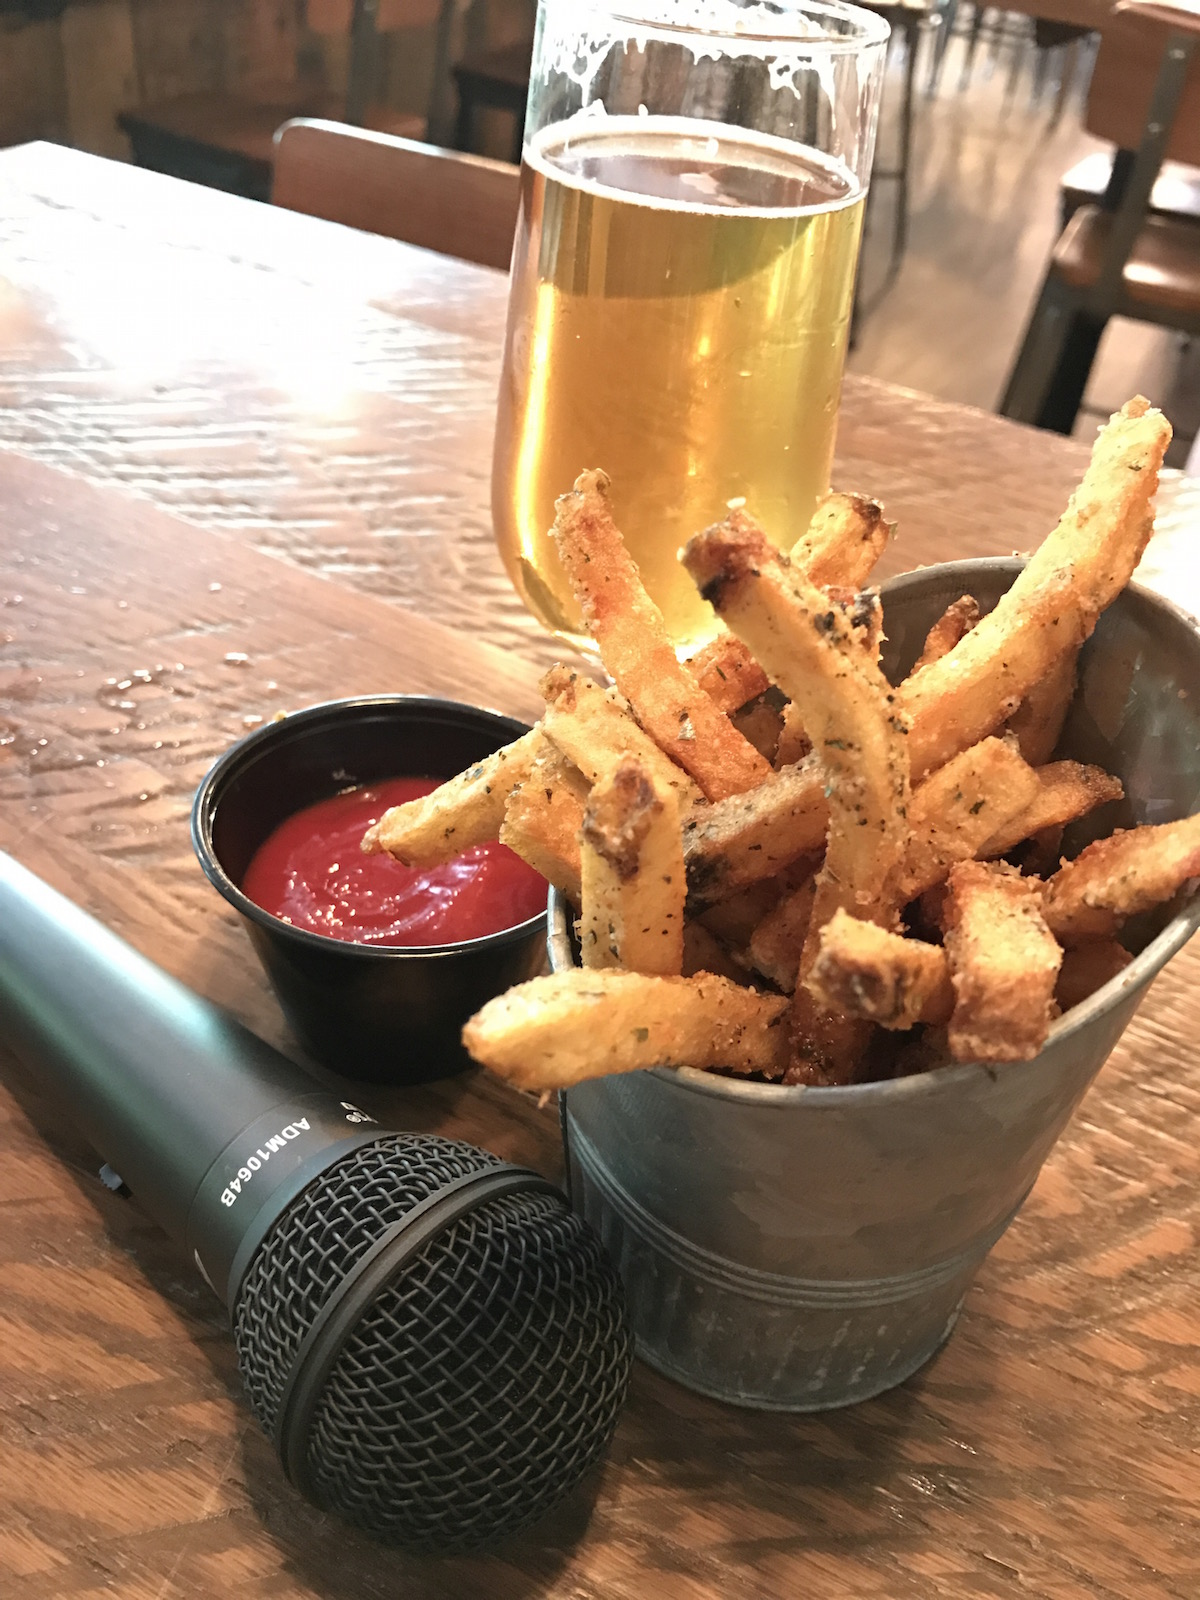 Pommes Frites and Podcasting at The Foundry